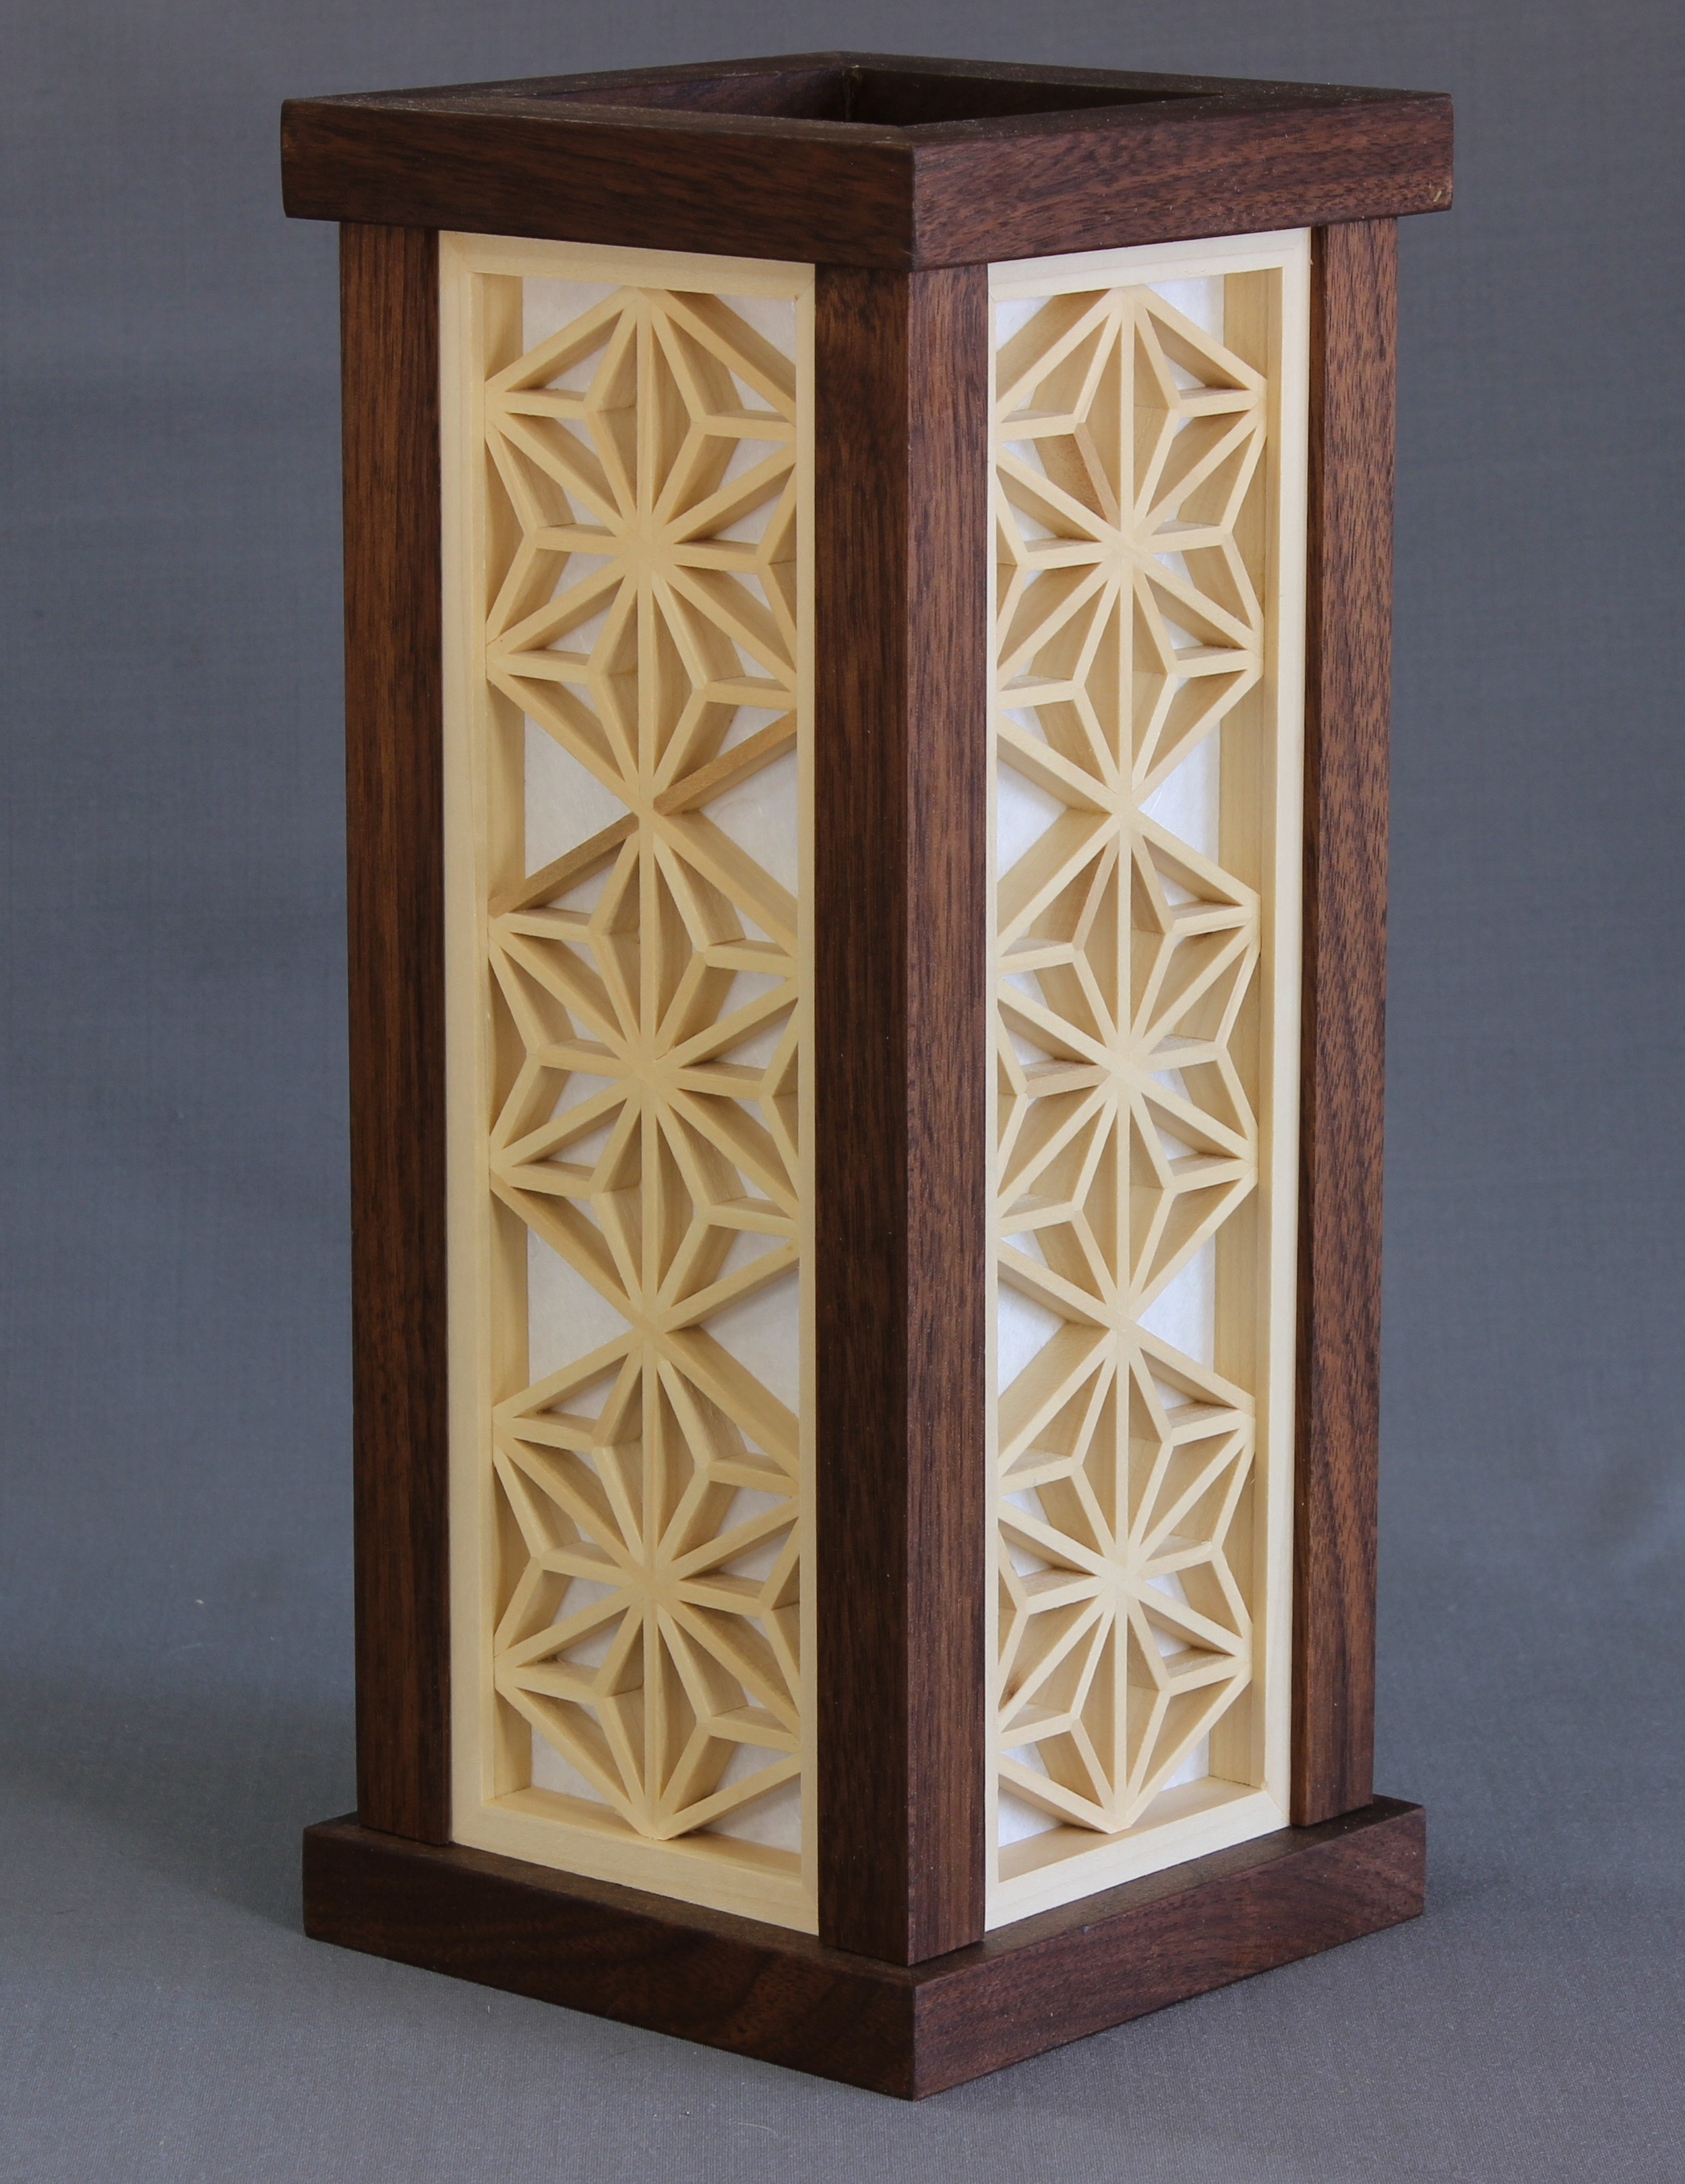 Andon Model #76   625.00 USD  12 3/16 x 5 5/16 x 5 5/16 inches  Shown in Walnut, made to order available in any domestic species.  Japanese shoji paper over wood.  Supplied with a led light fixture manufactured from UL listed parts.